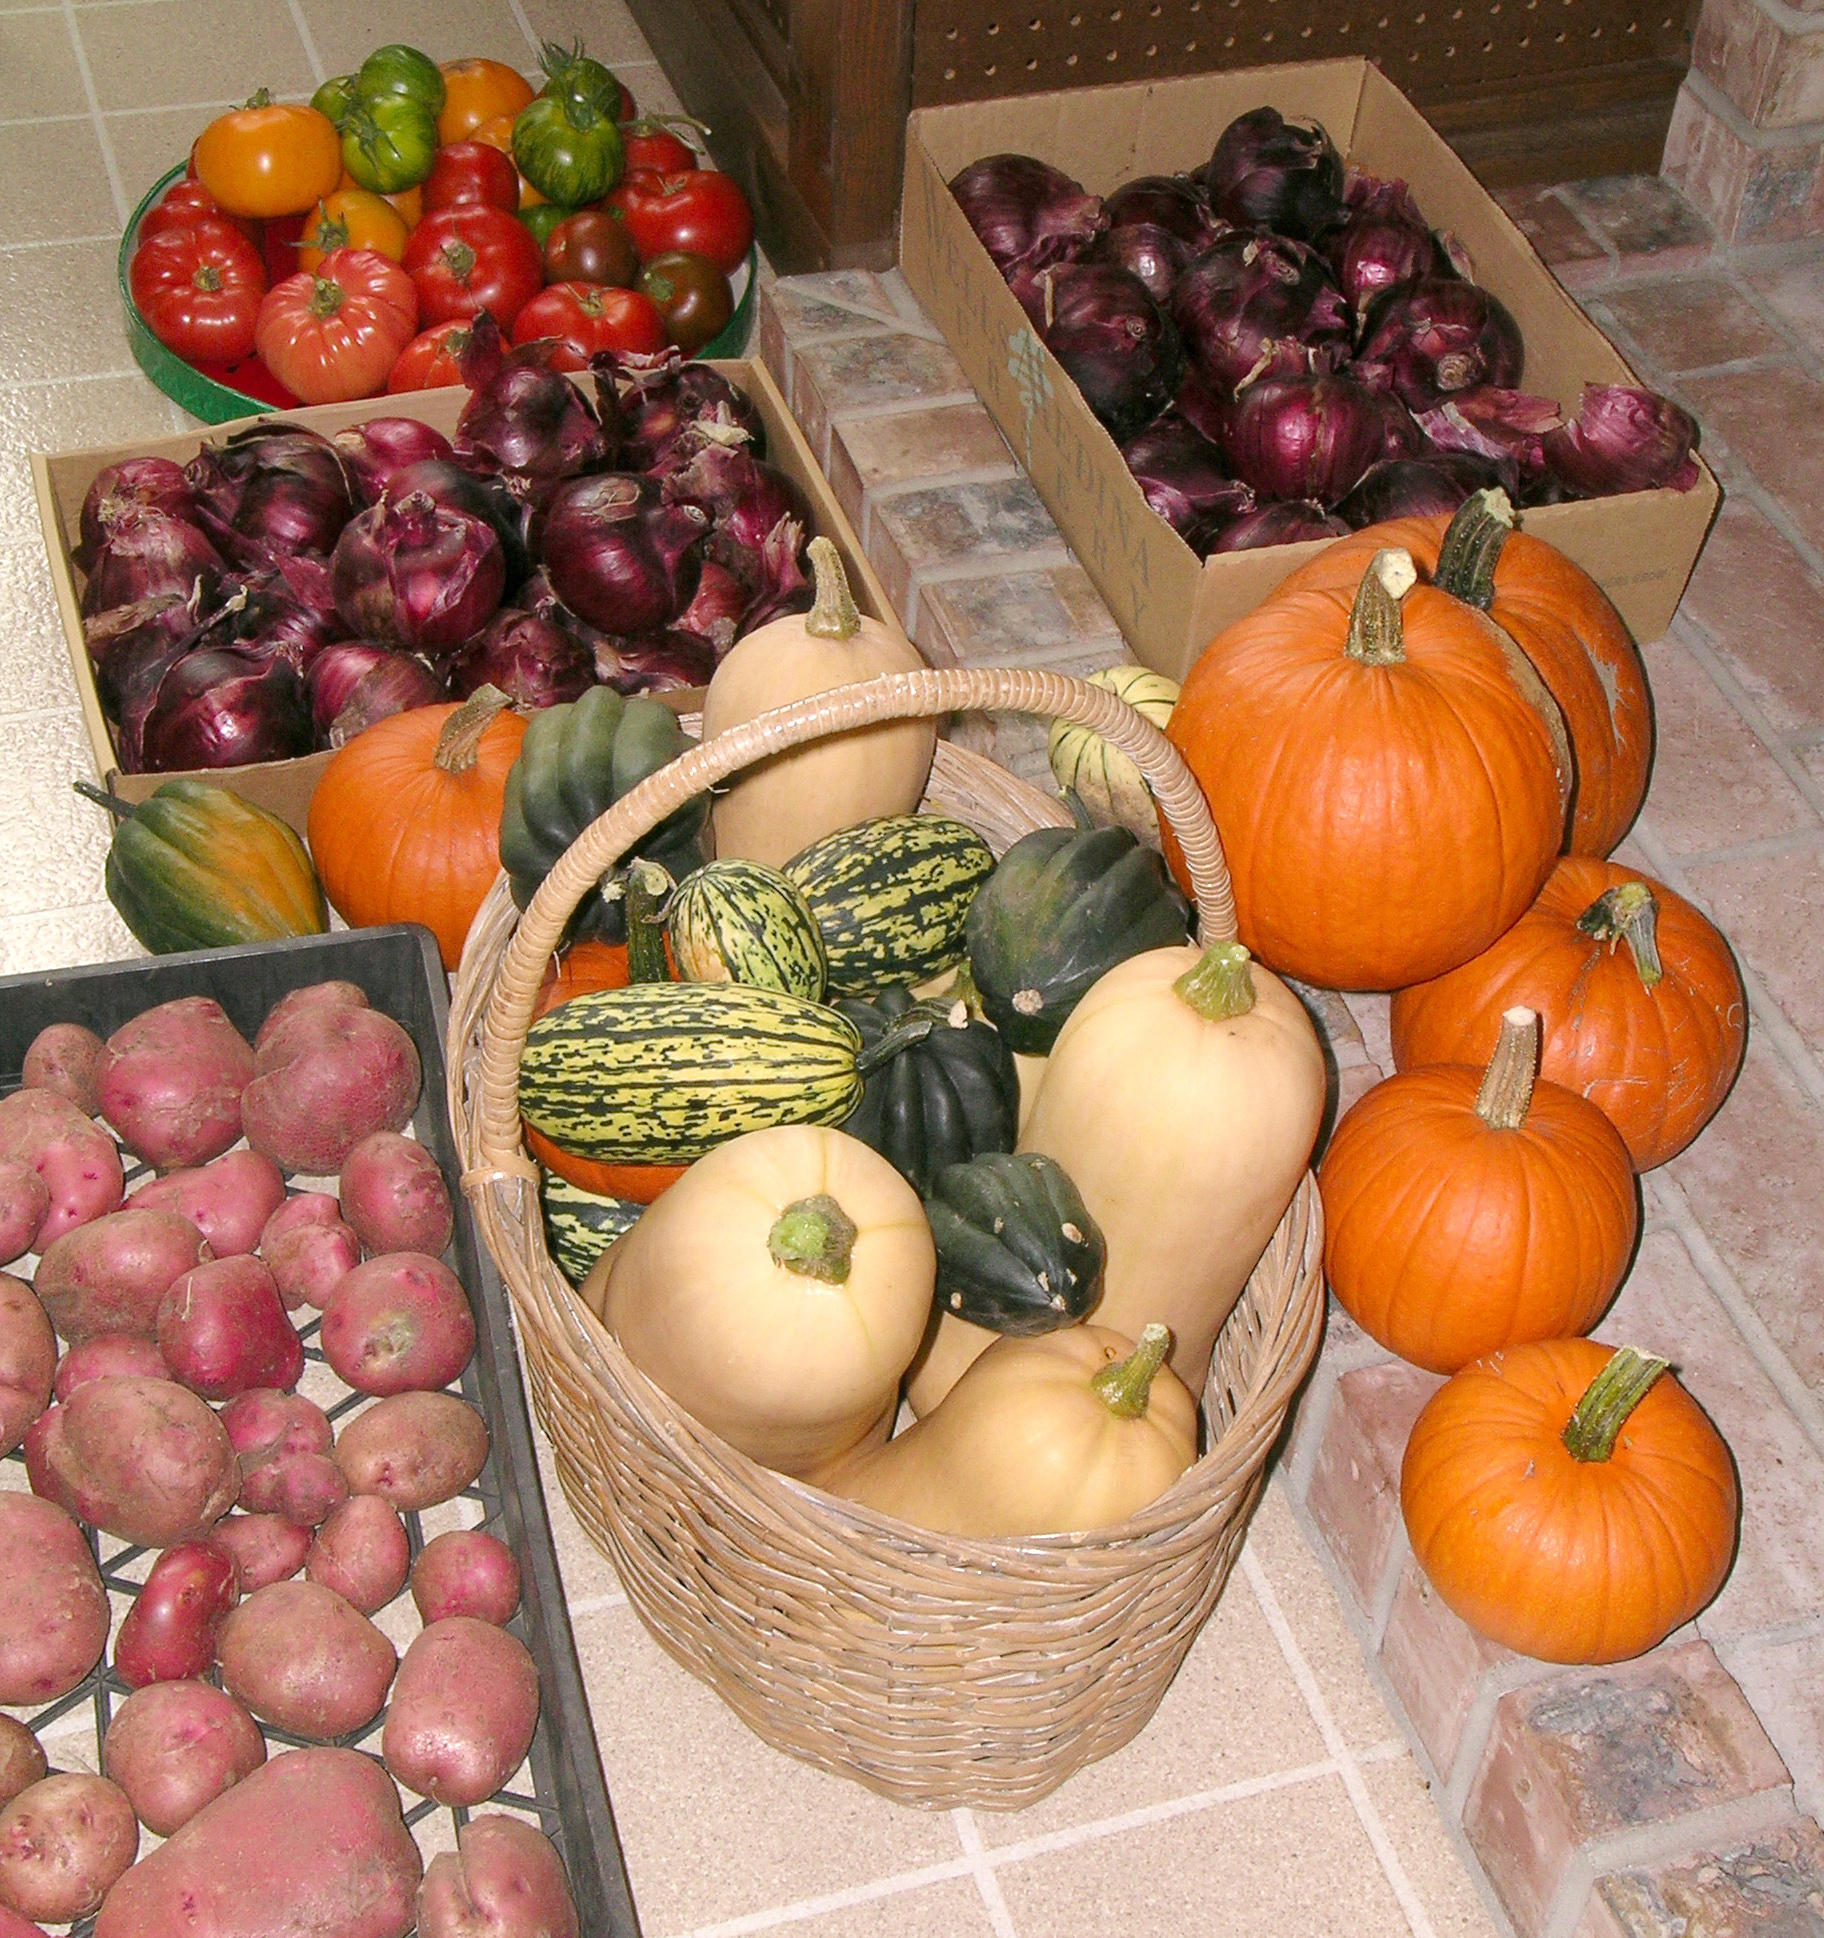 P Patch Produce Including Tomatoes Red Onions Potatoes Pumpkins Winter Squashes Sept 2007 By MCM